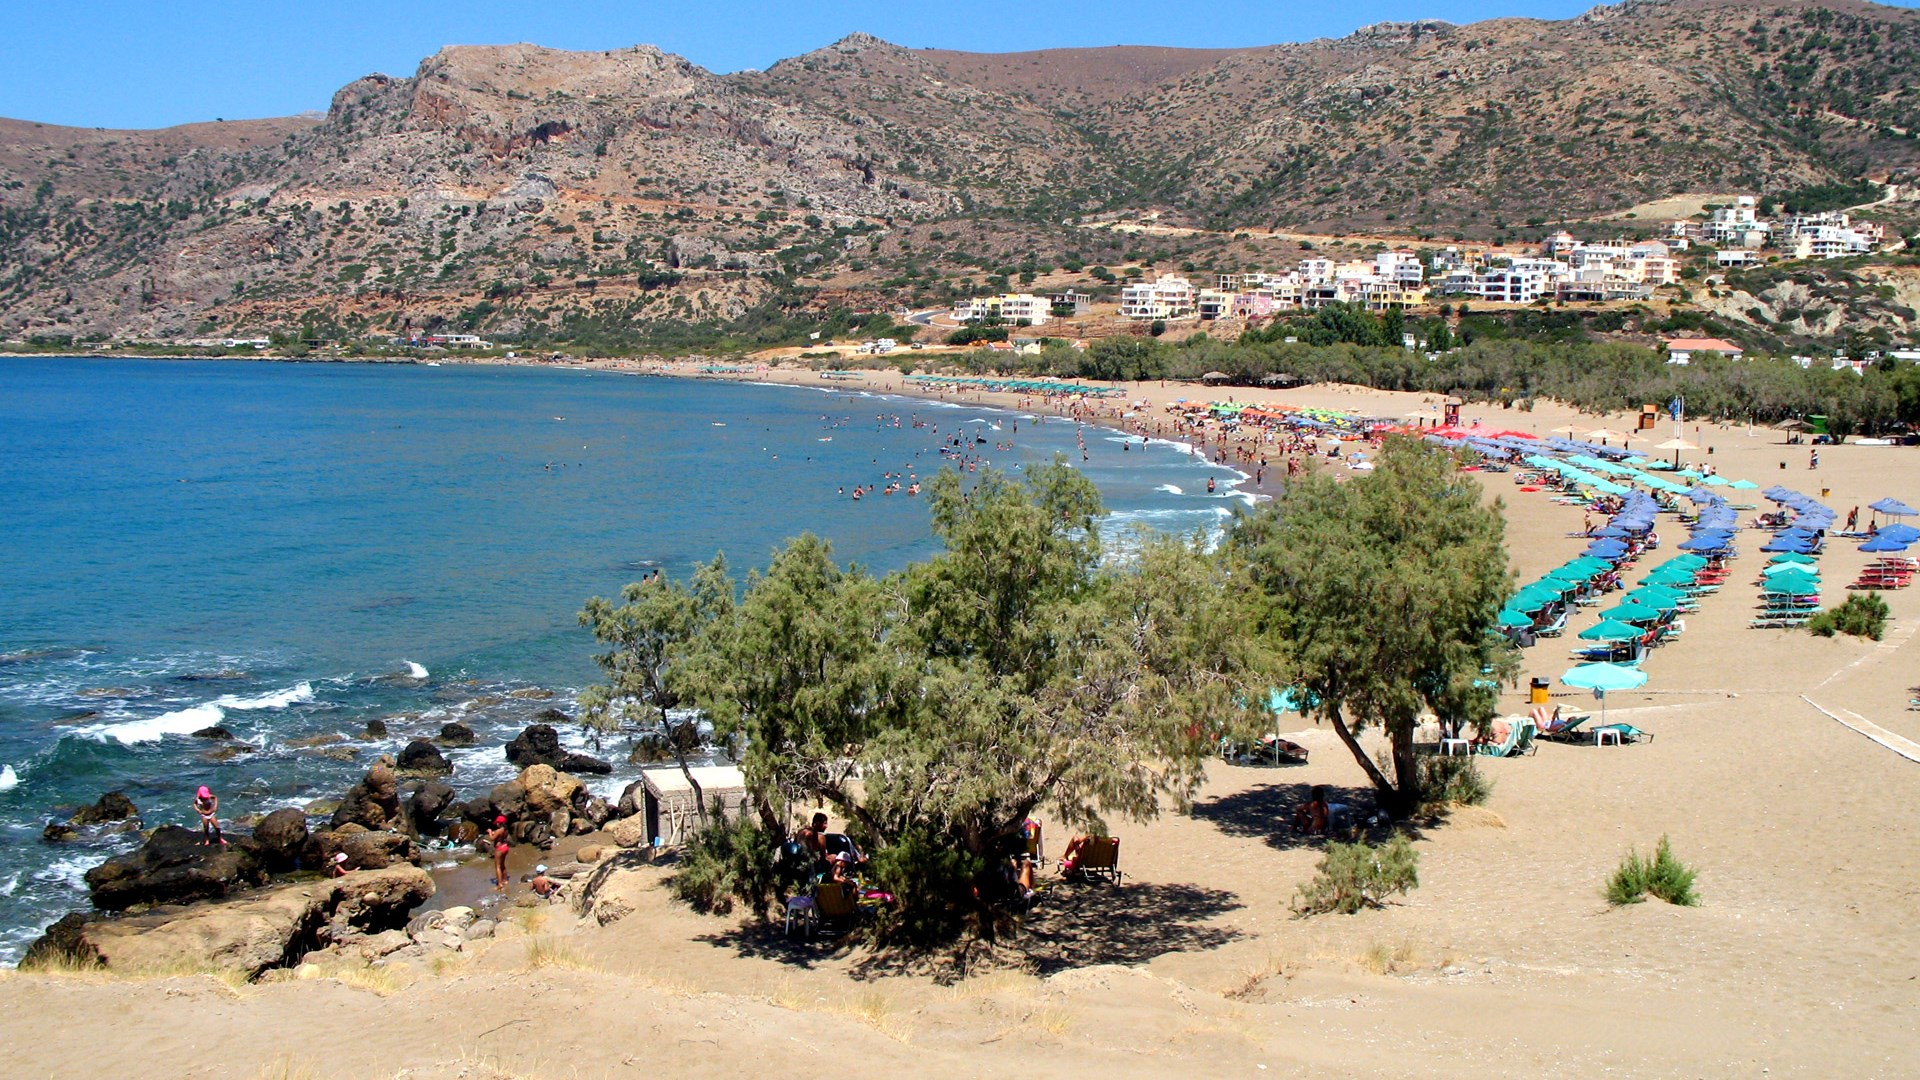 Pahia Ammos Beach, Paleochora-South Crete | 05 Aug 2016 | Alargo